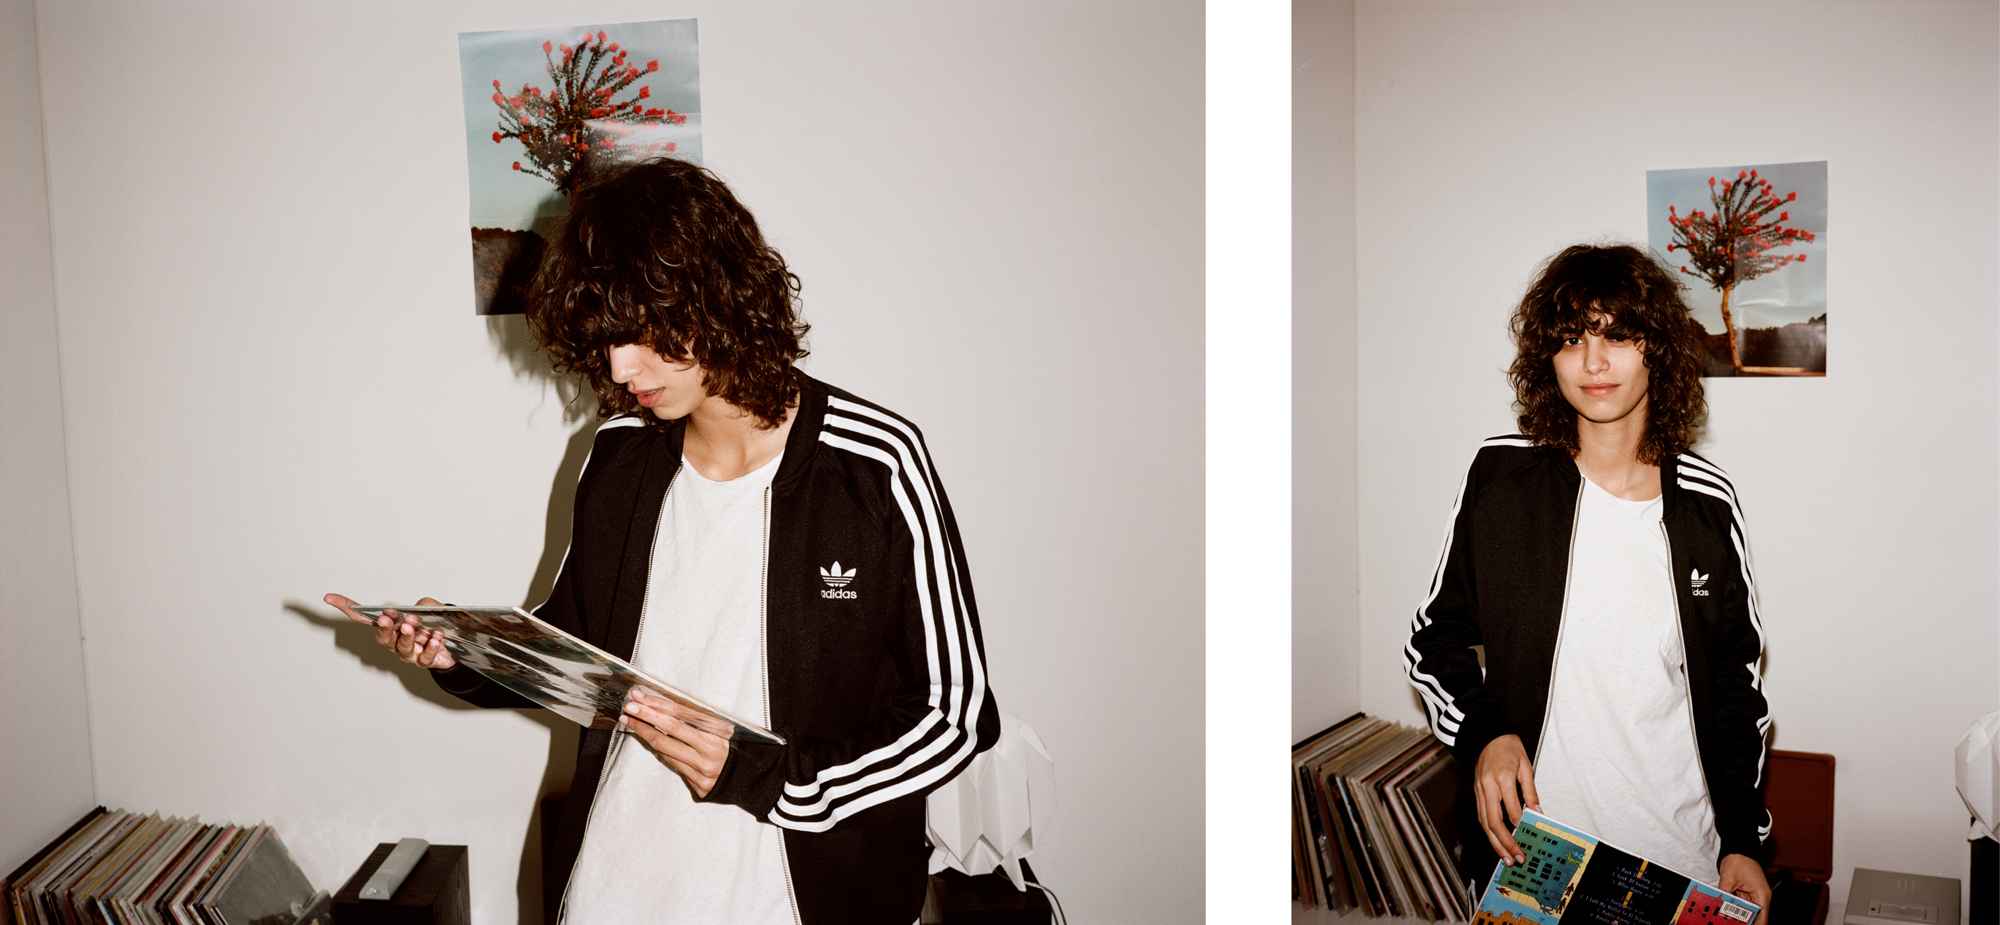 Track jacket by Adidas. T-shirt by Calvin Klein.